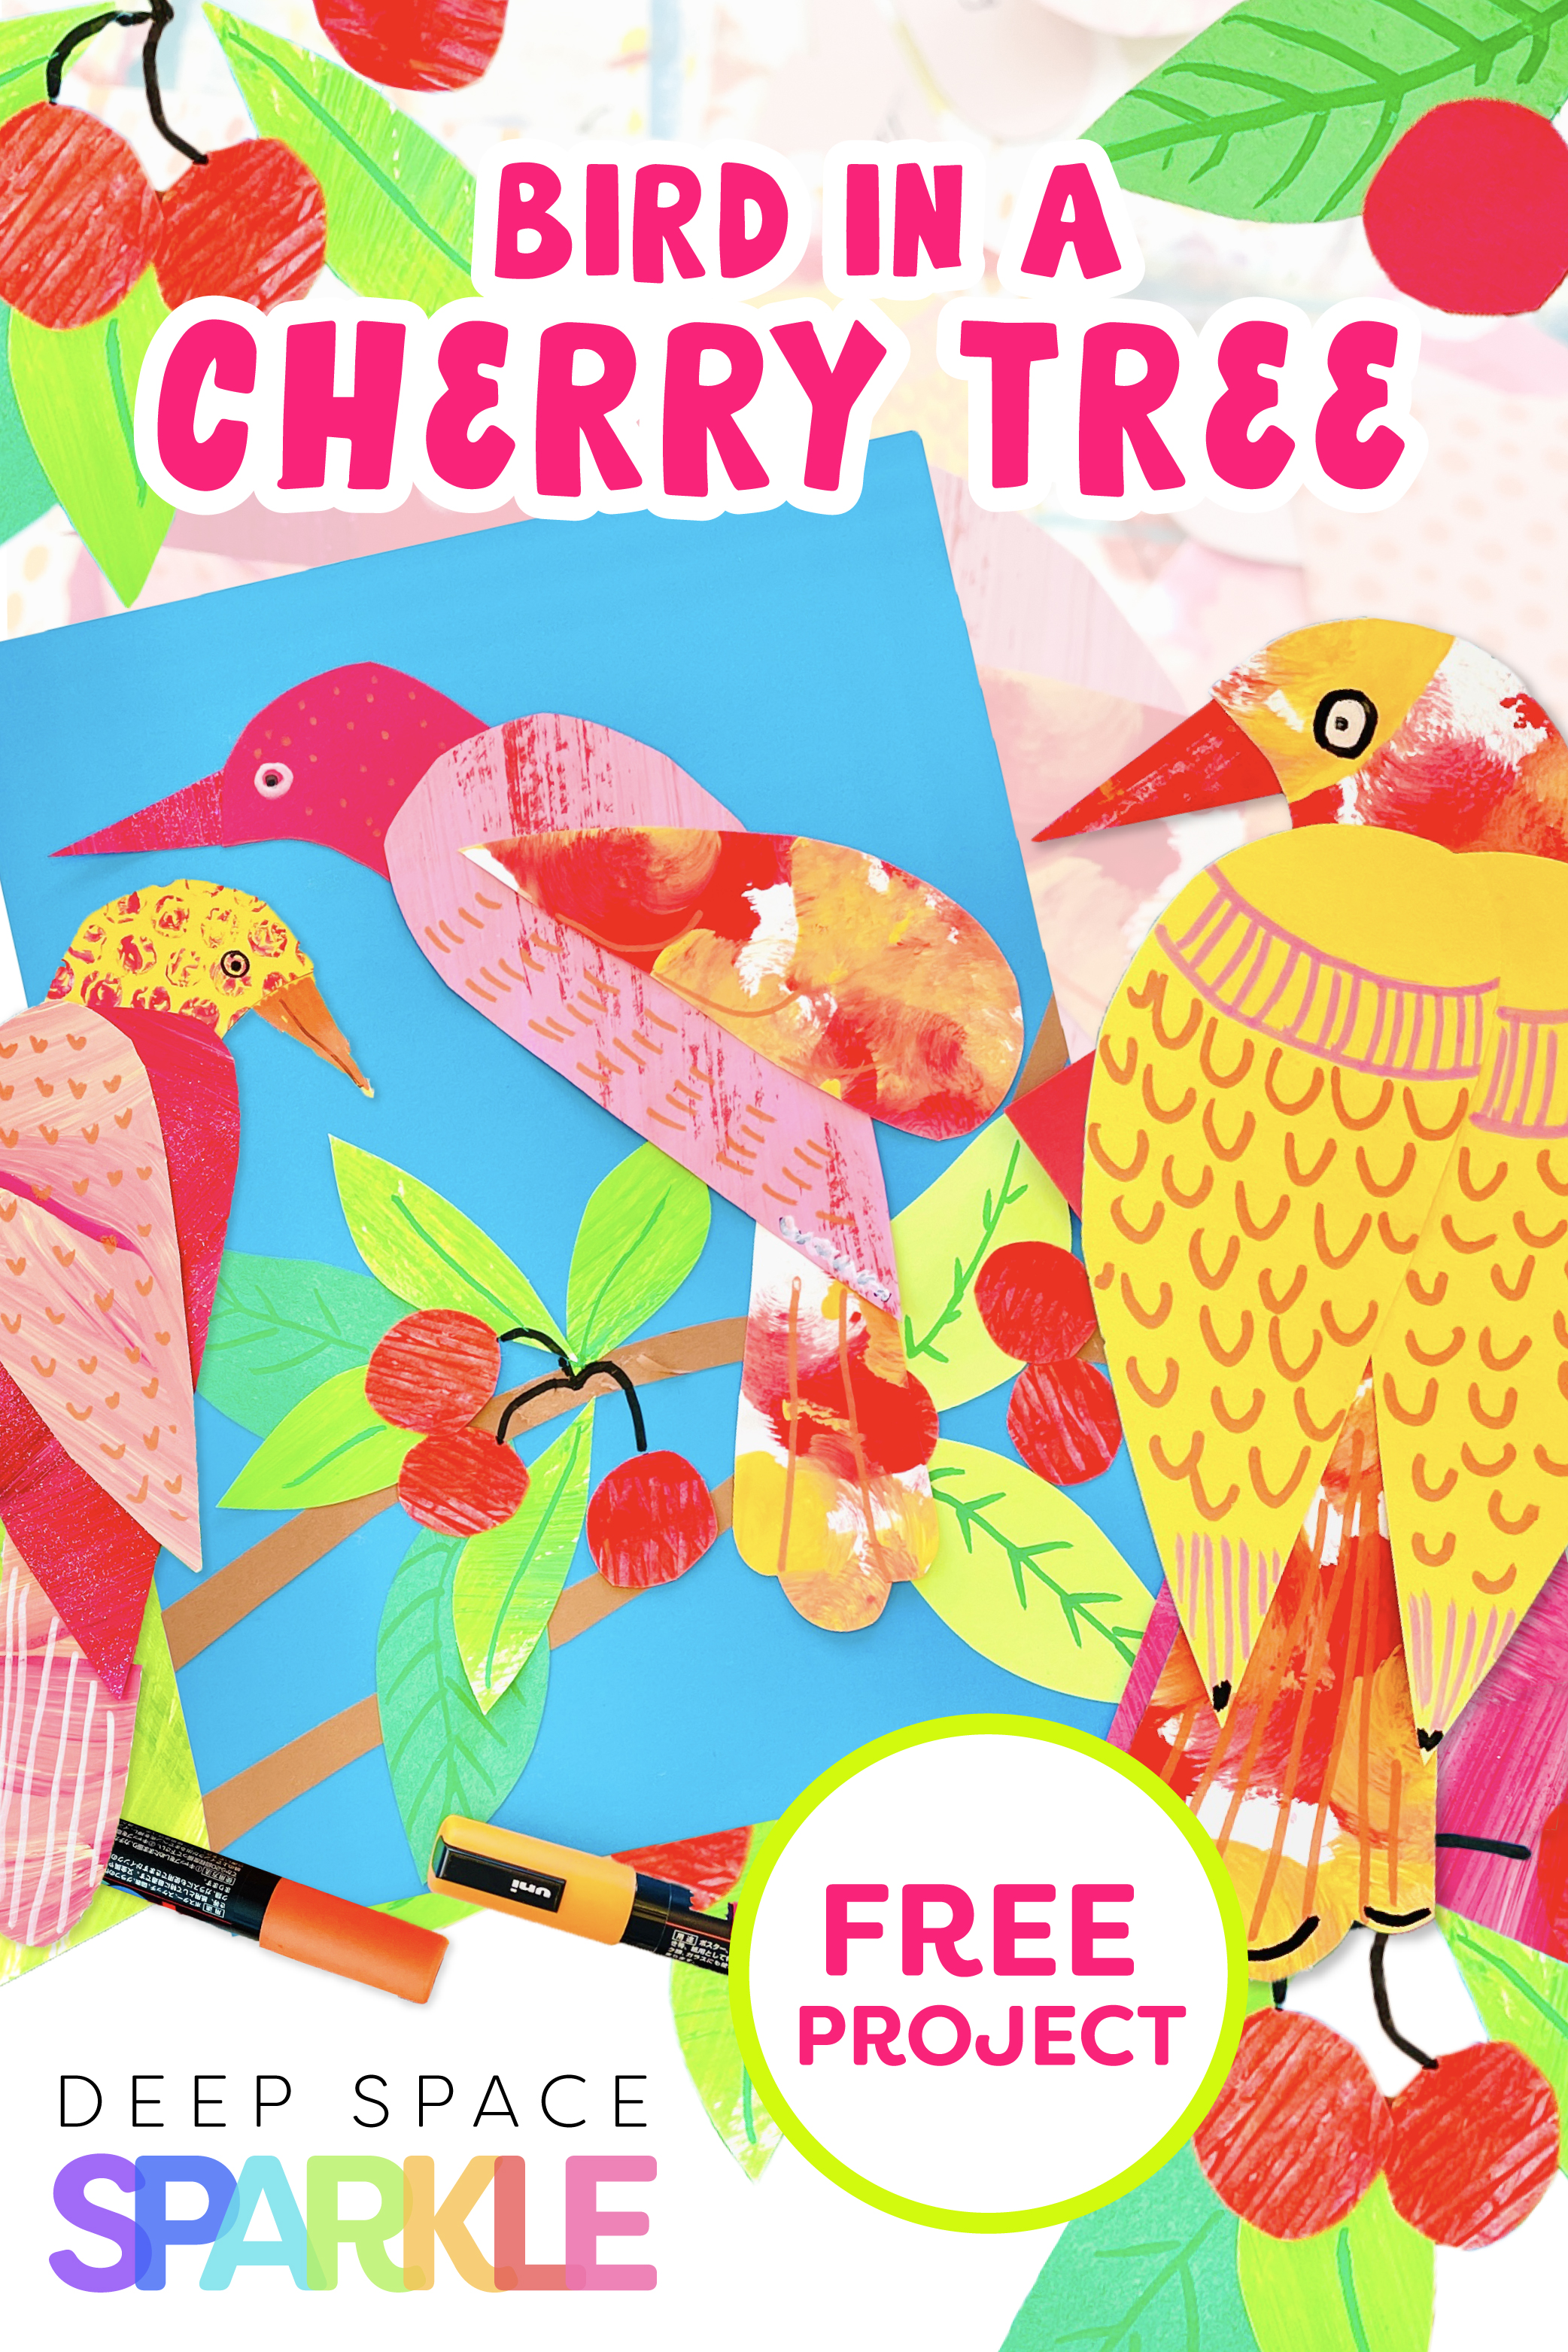 Bird in a Cherry Tree free project art lesson for kids